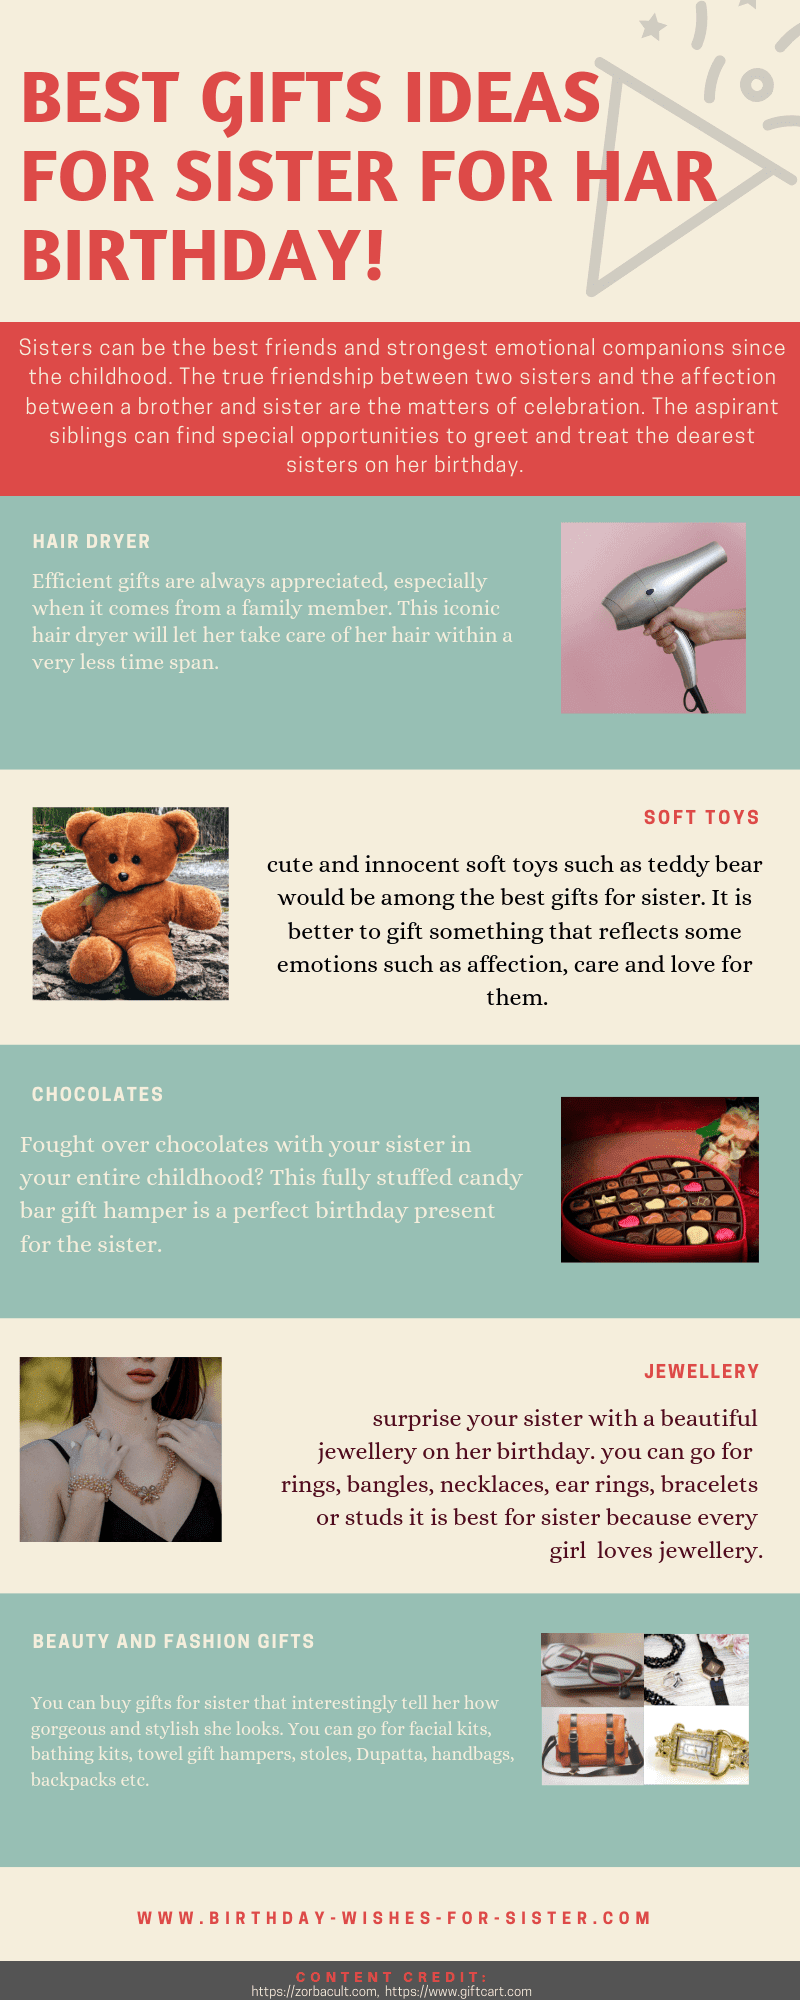 5 Best Birthday Gift Ideas For Sister Infographic